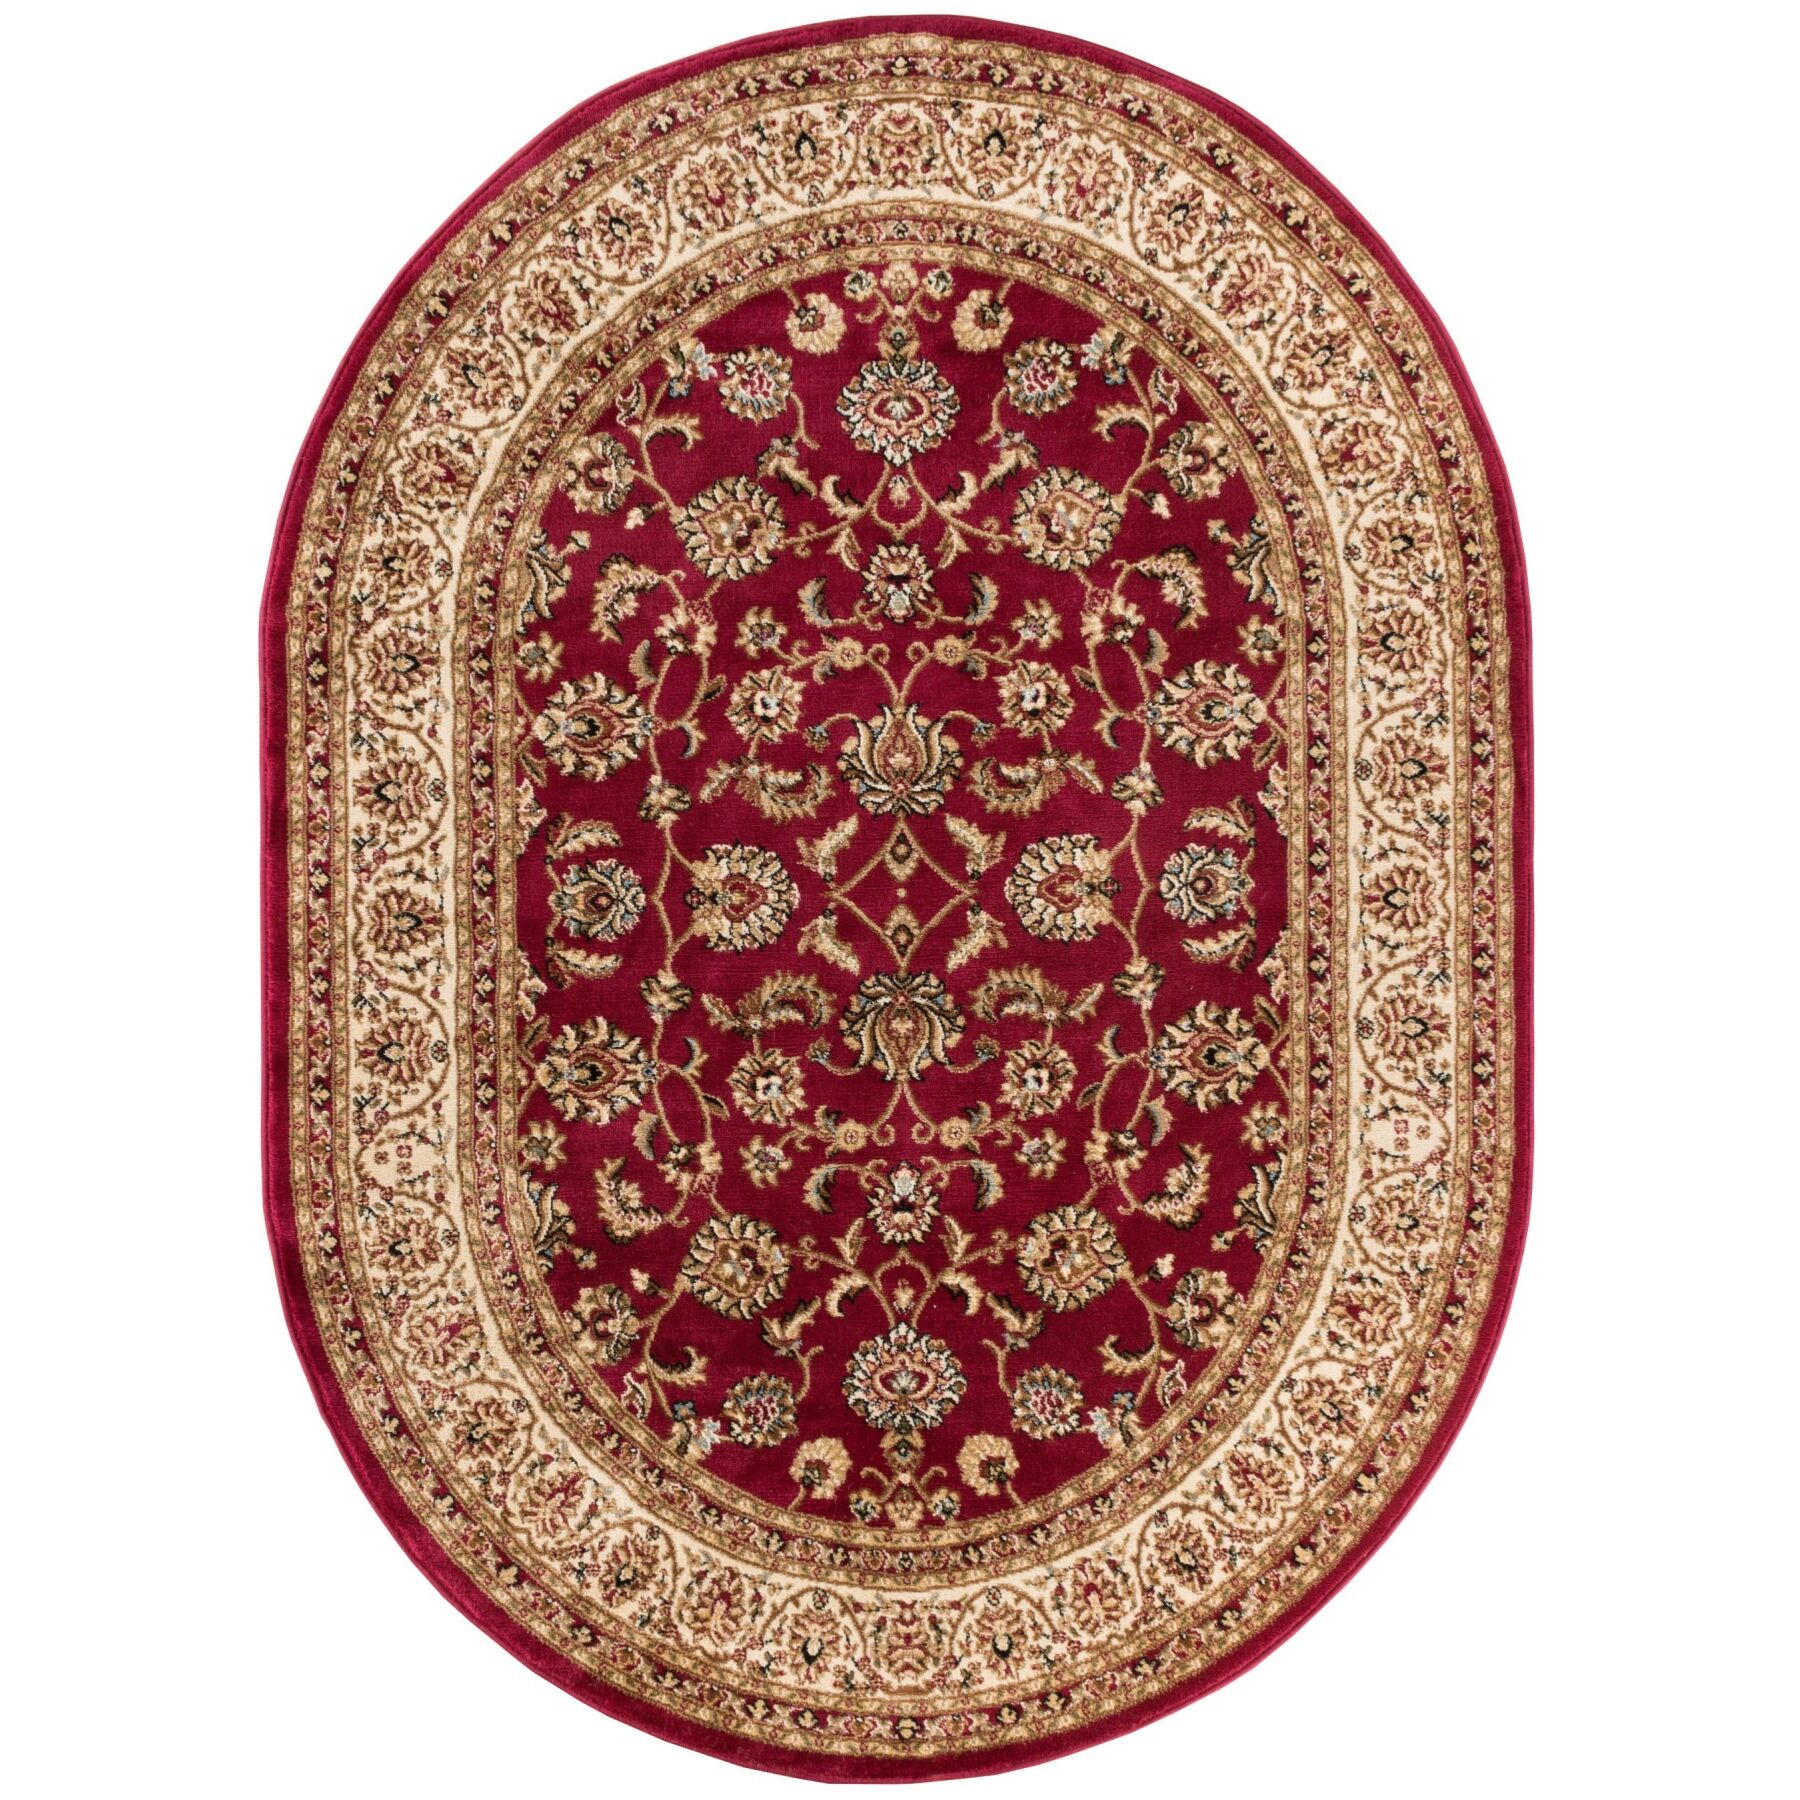 Belliere Sarouk Border Red Area Rug Rug Size: Oval 7'10